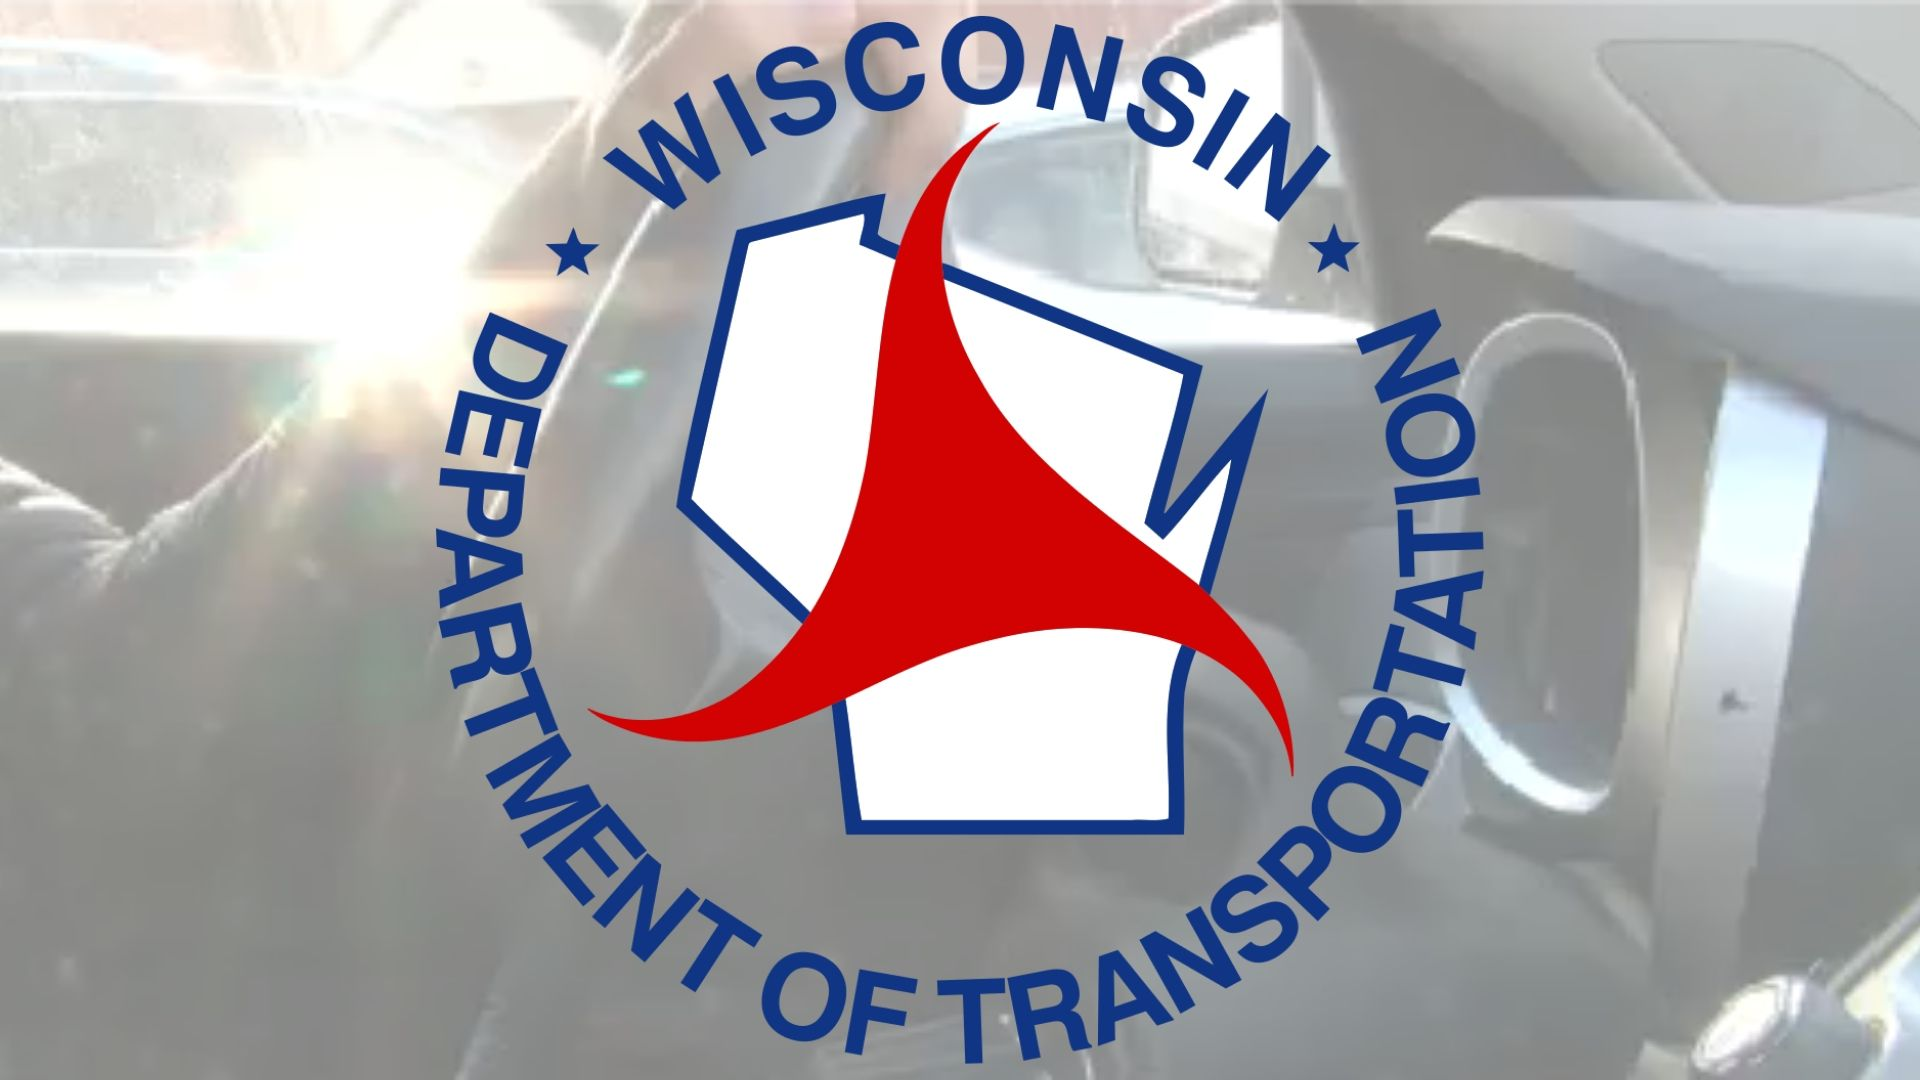 WisDOT, Wisconsin Department of Transportation